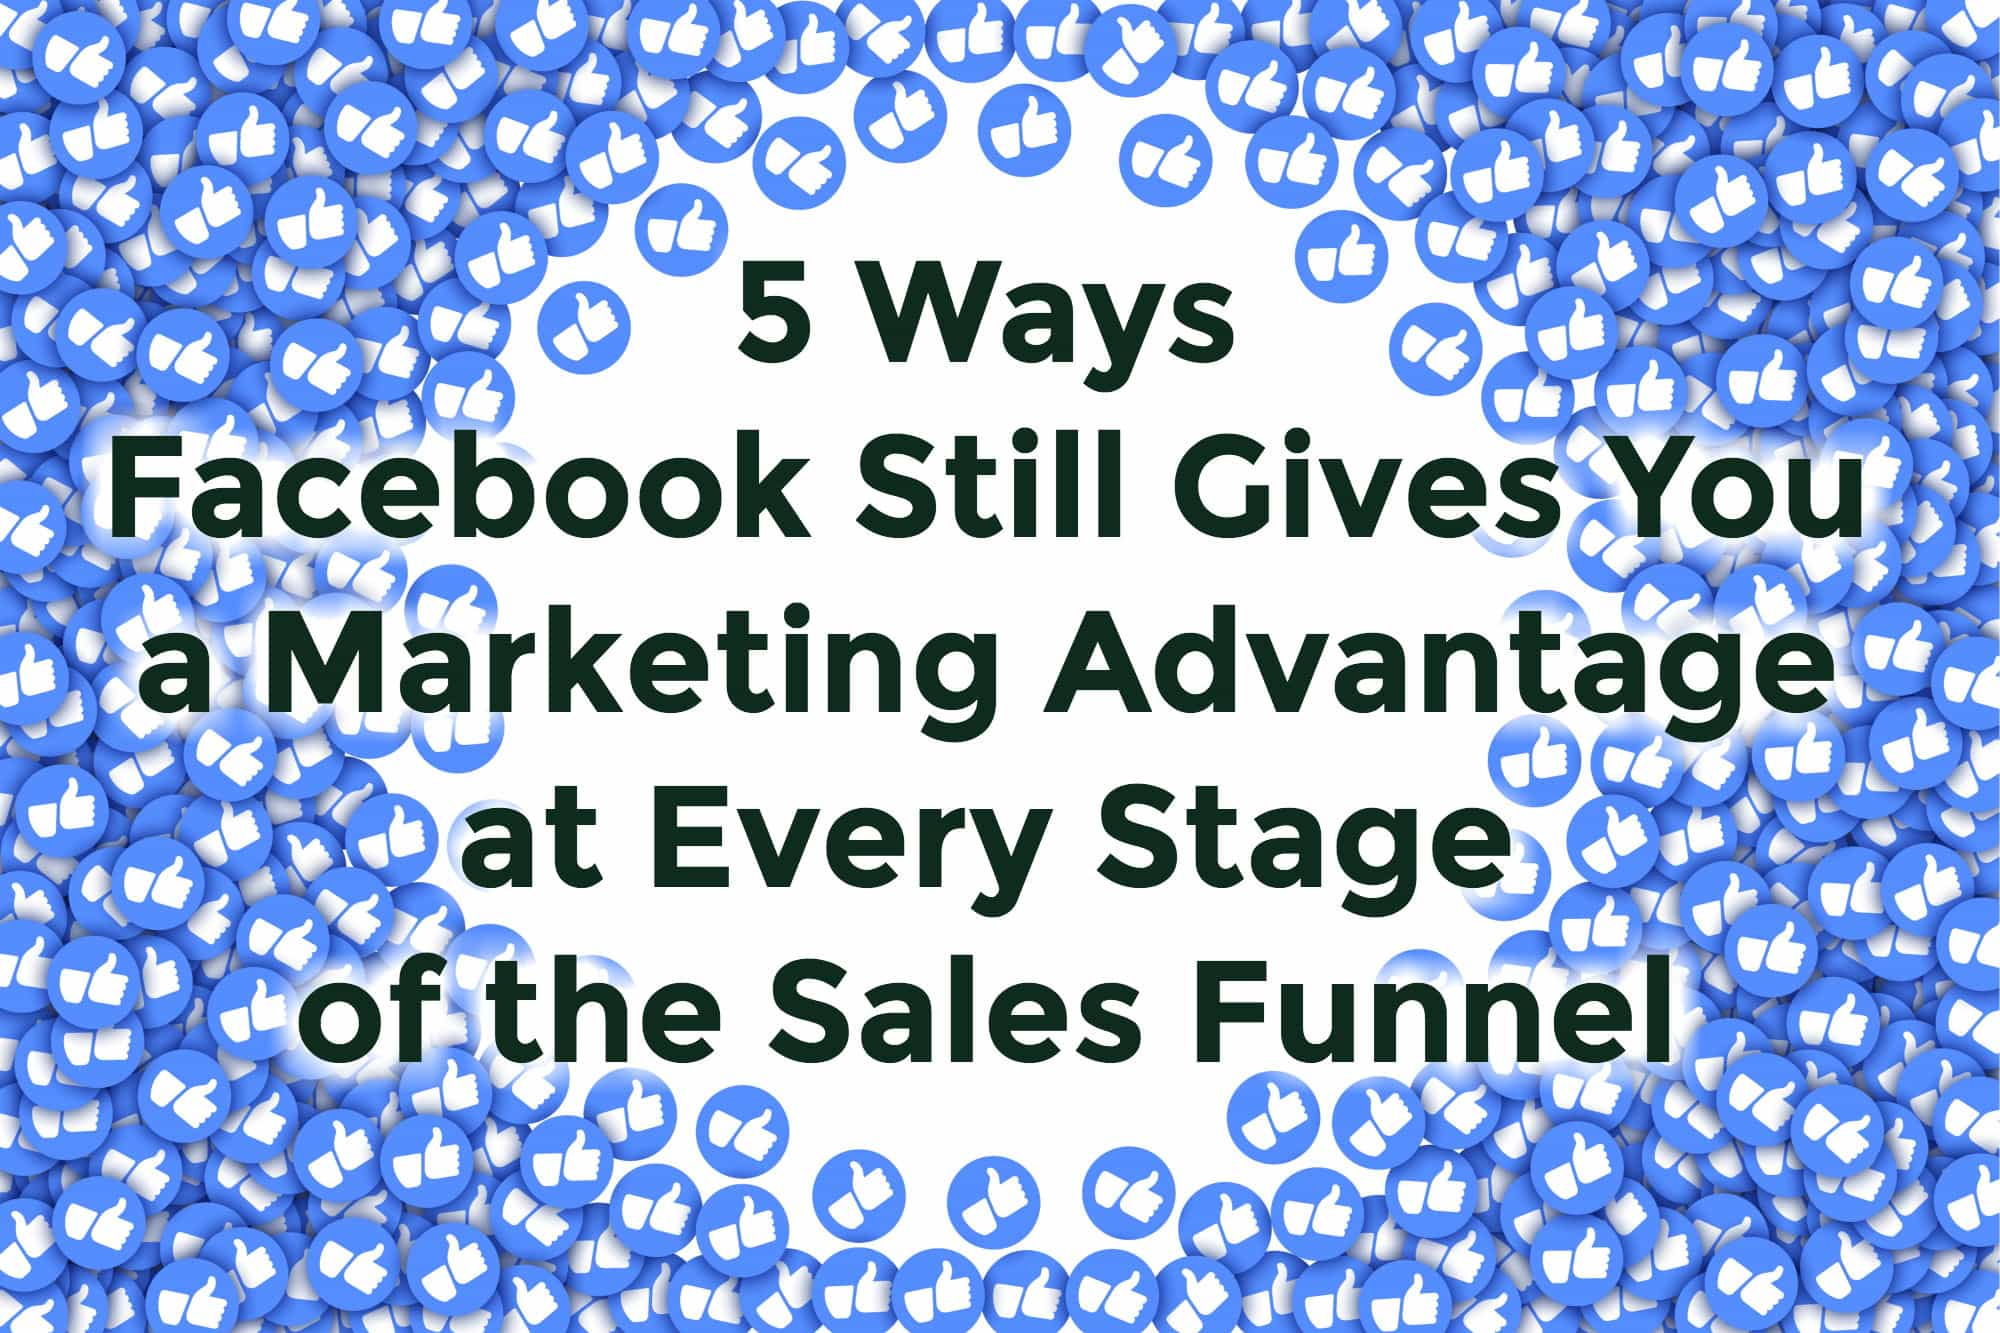 Top 5 Advantages of Facebook Marketing for Your Business - Vindicta